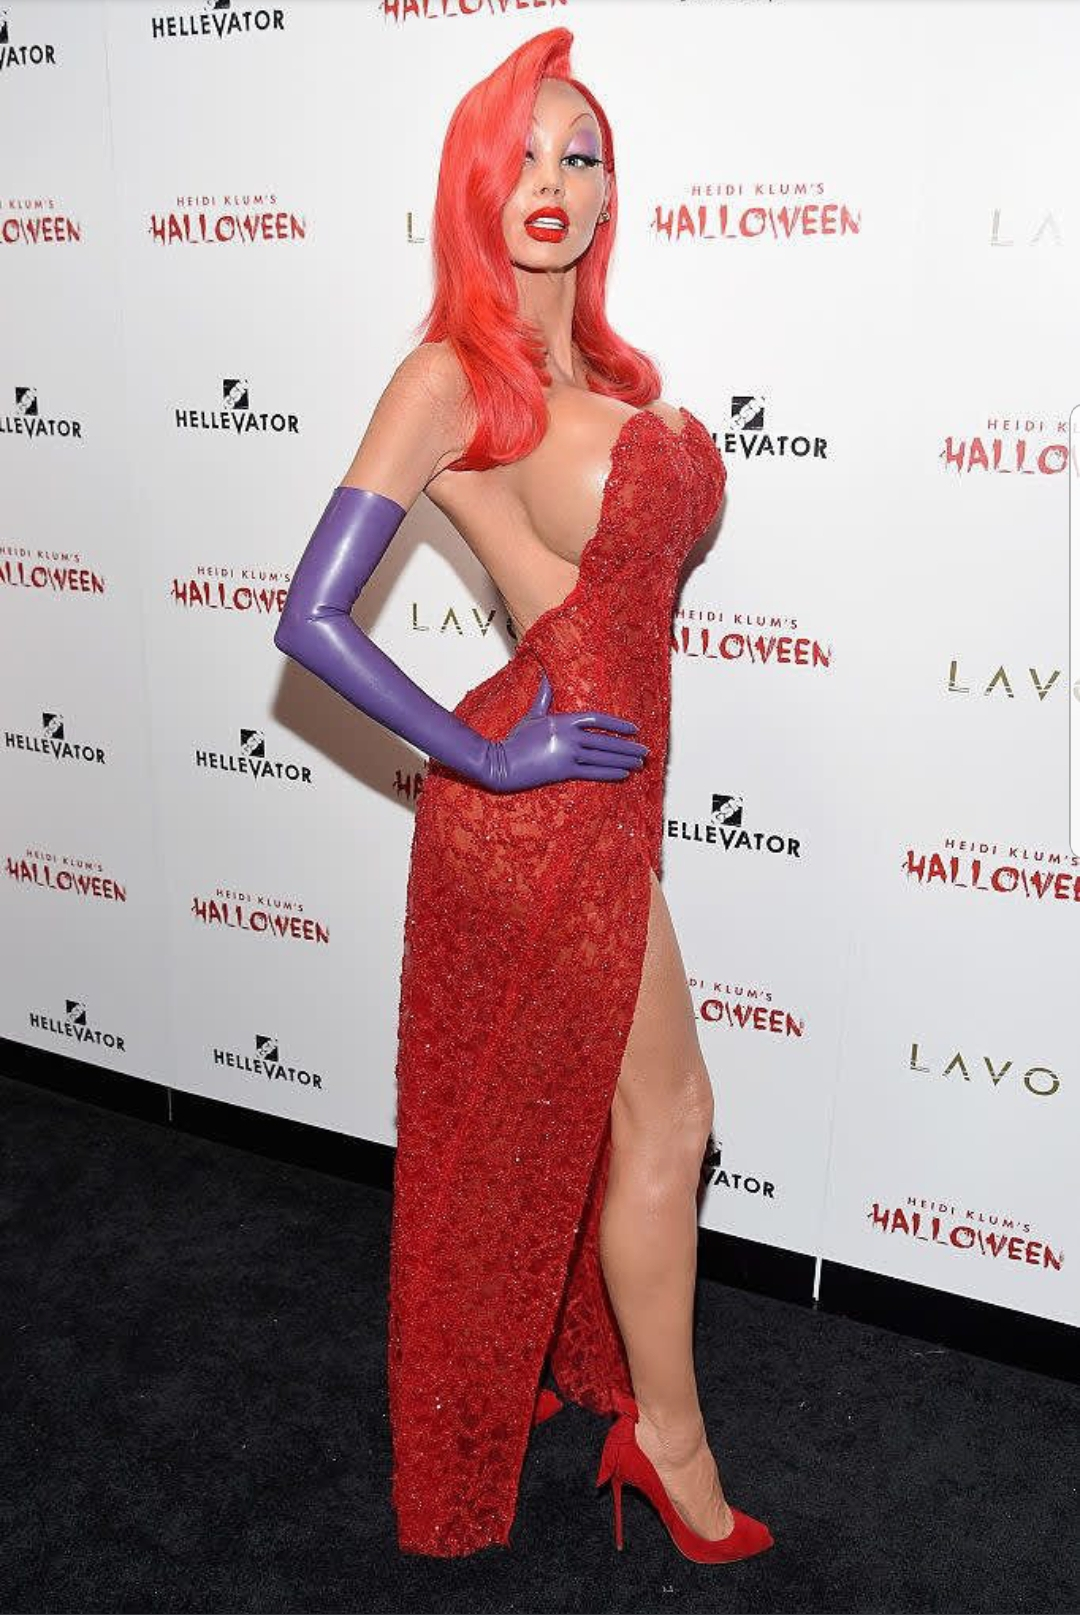 Image result for Jessica Rabbit real pic